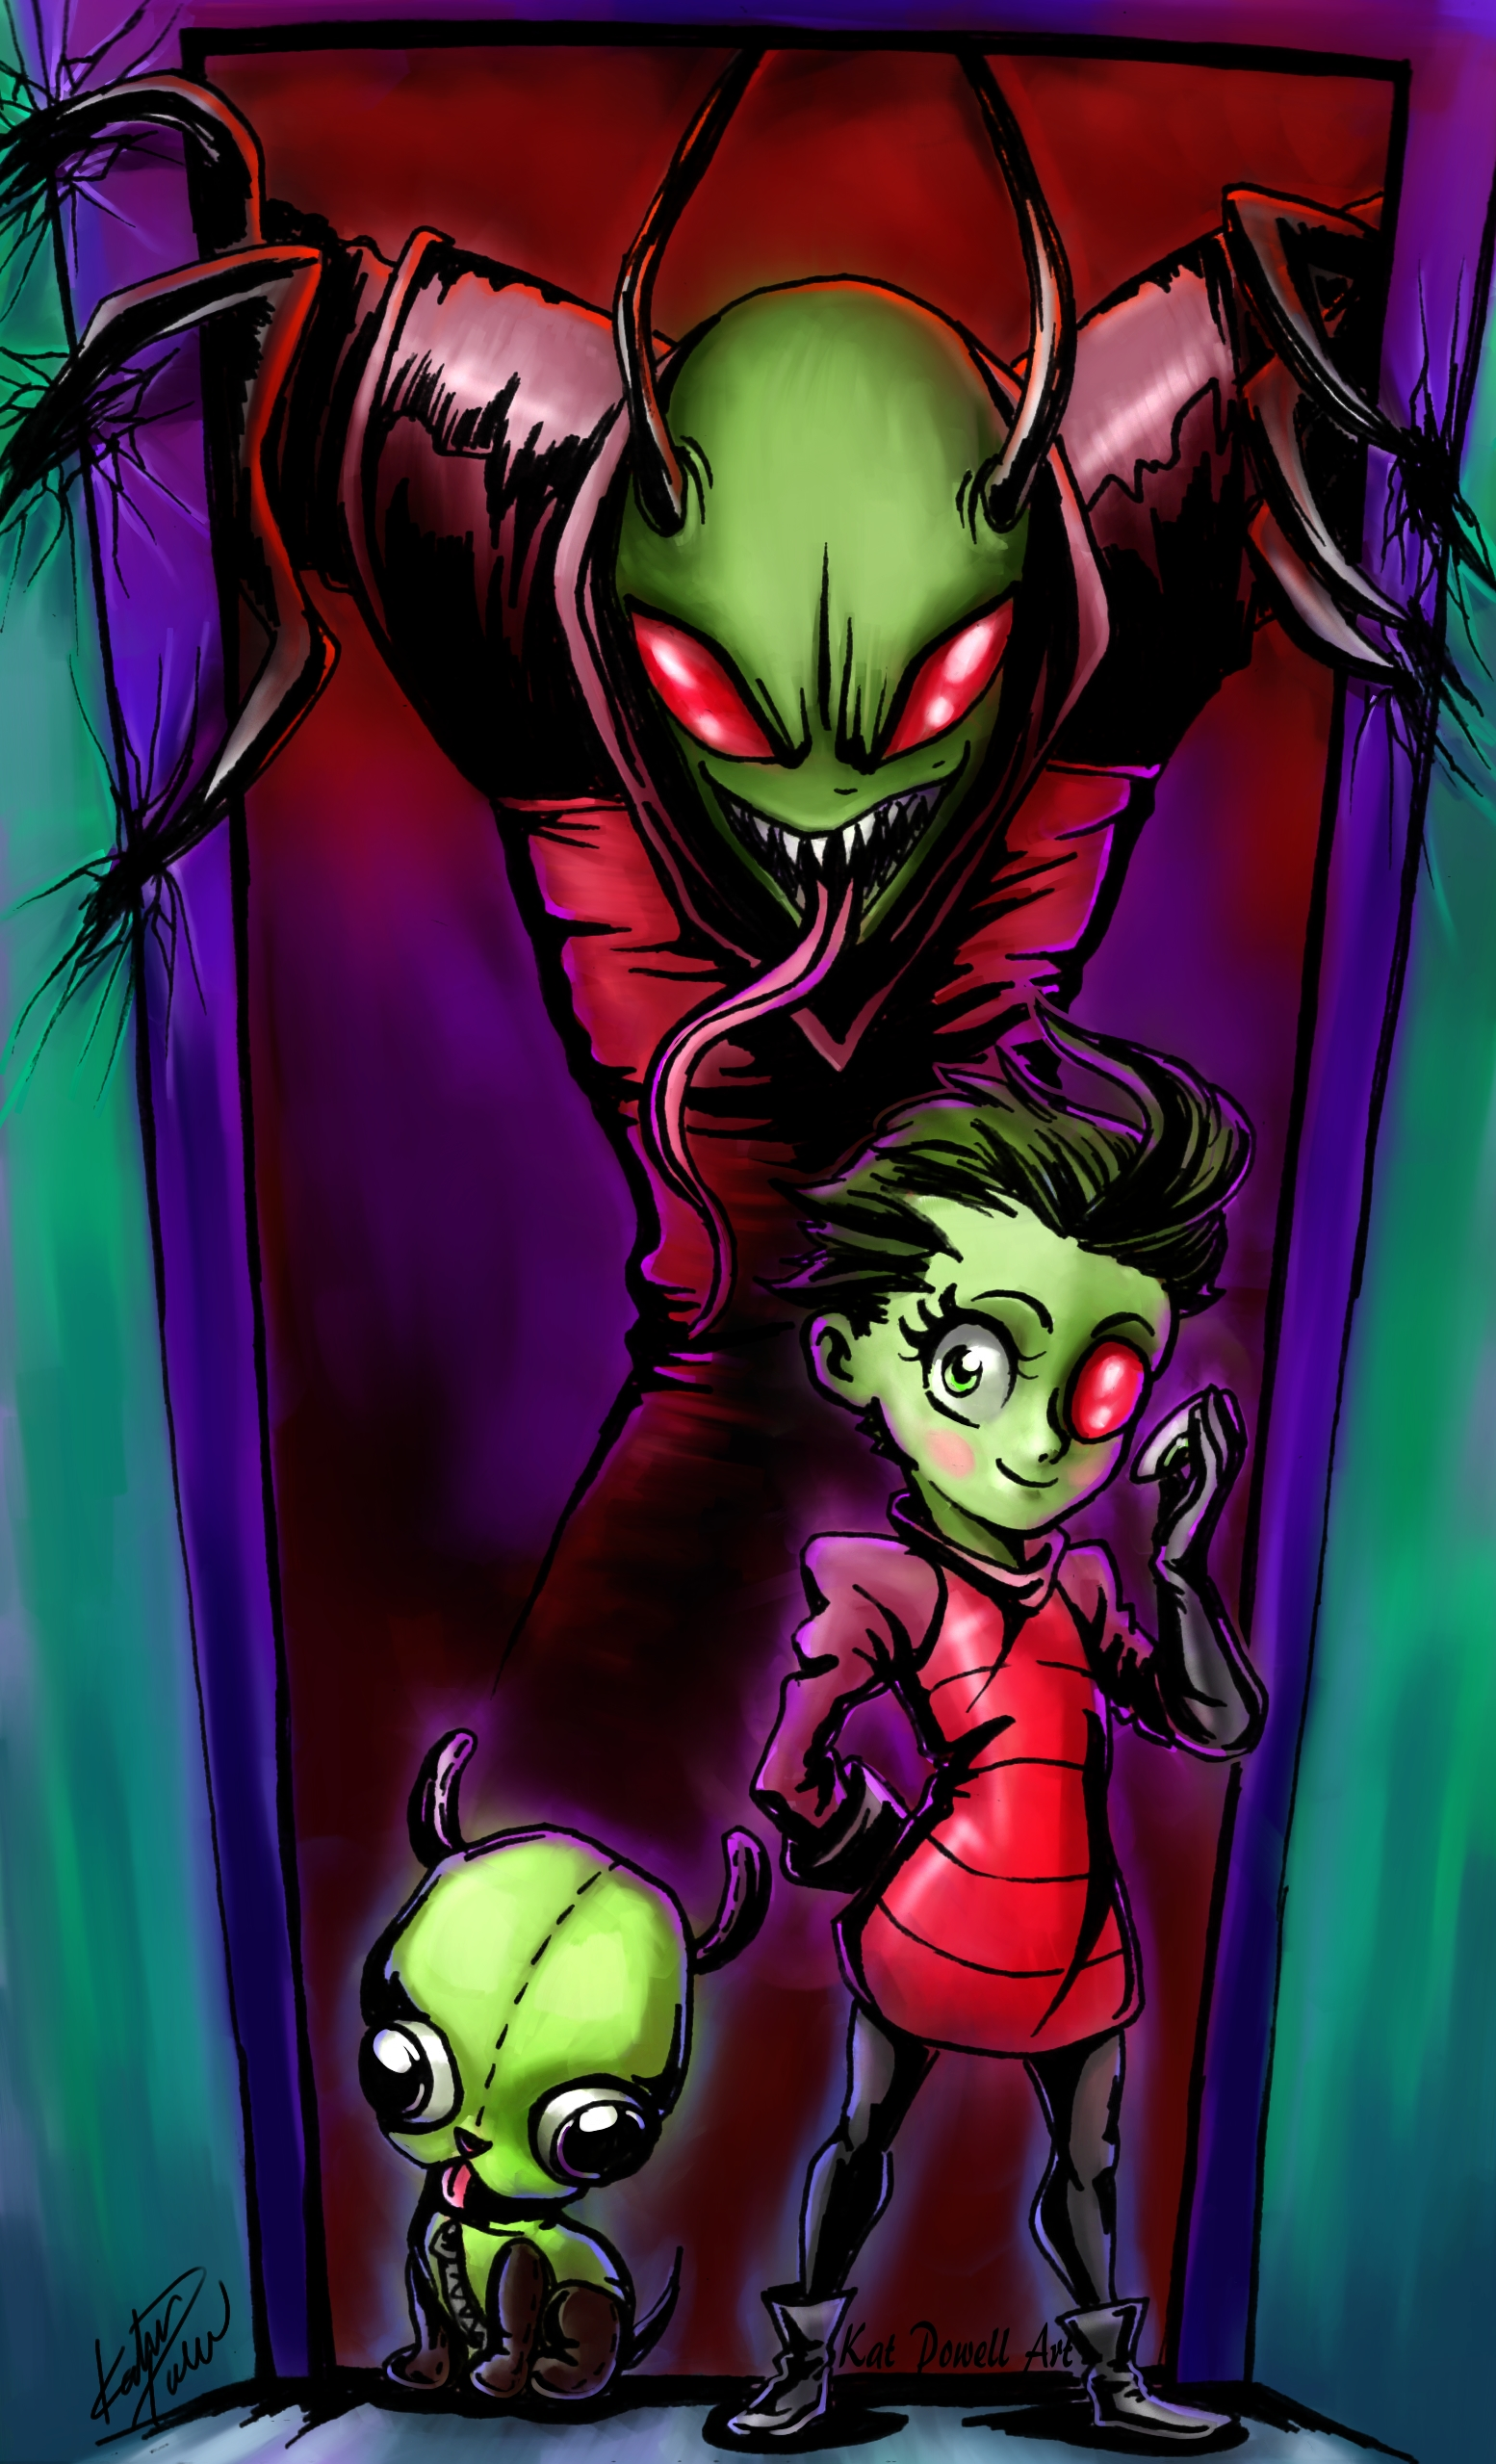 Invader Zim color wm